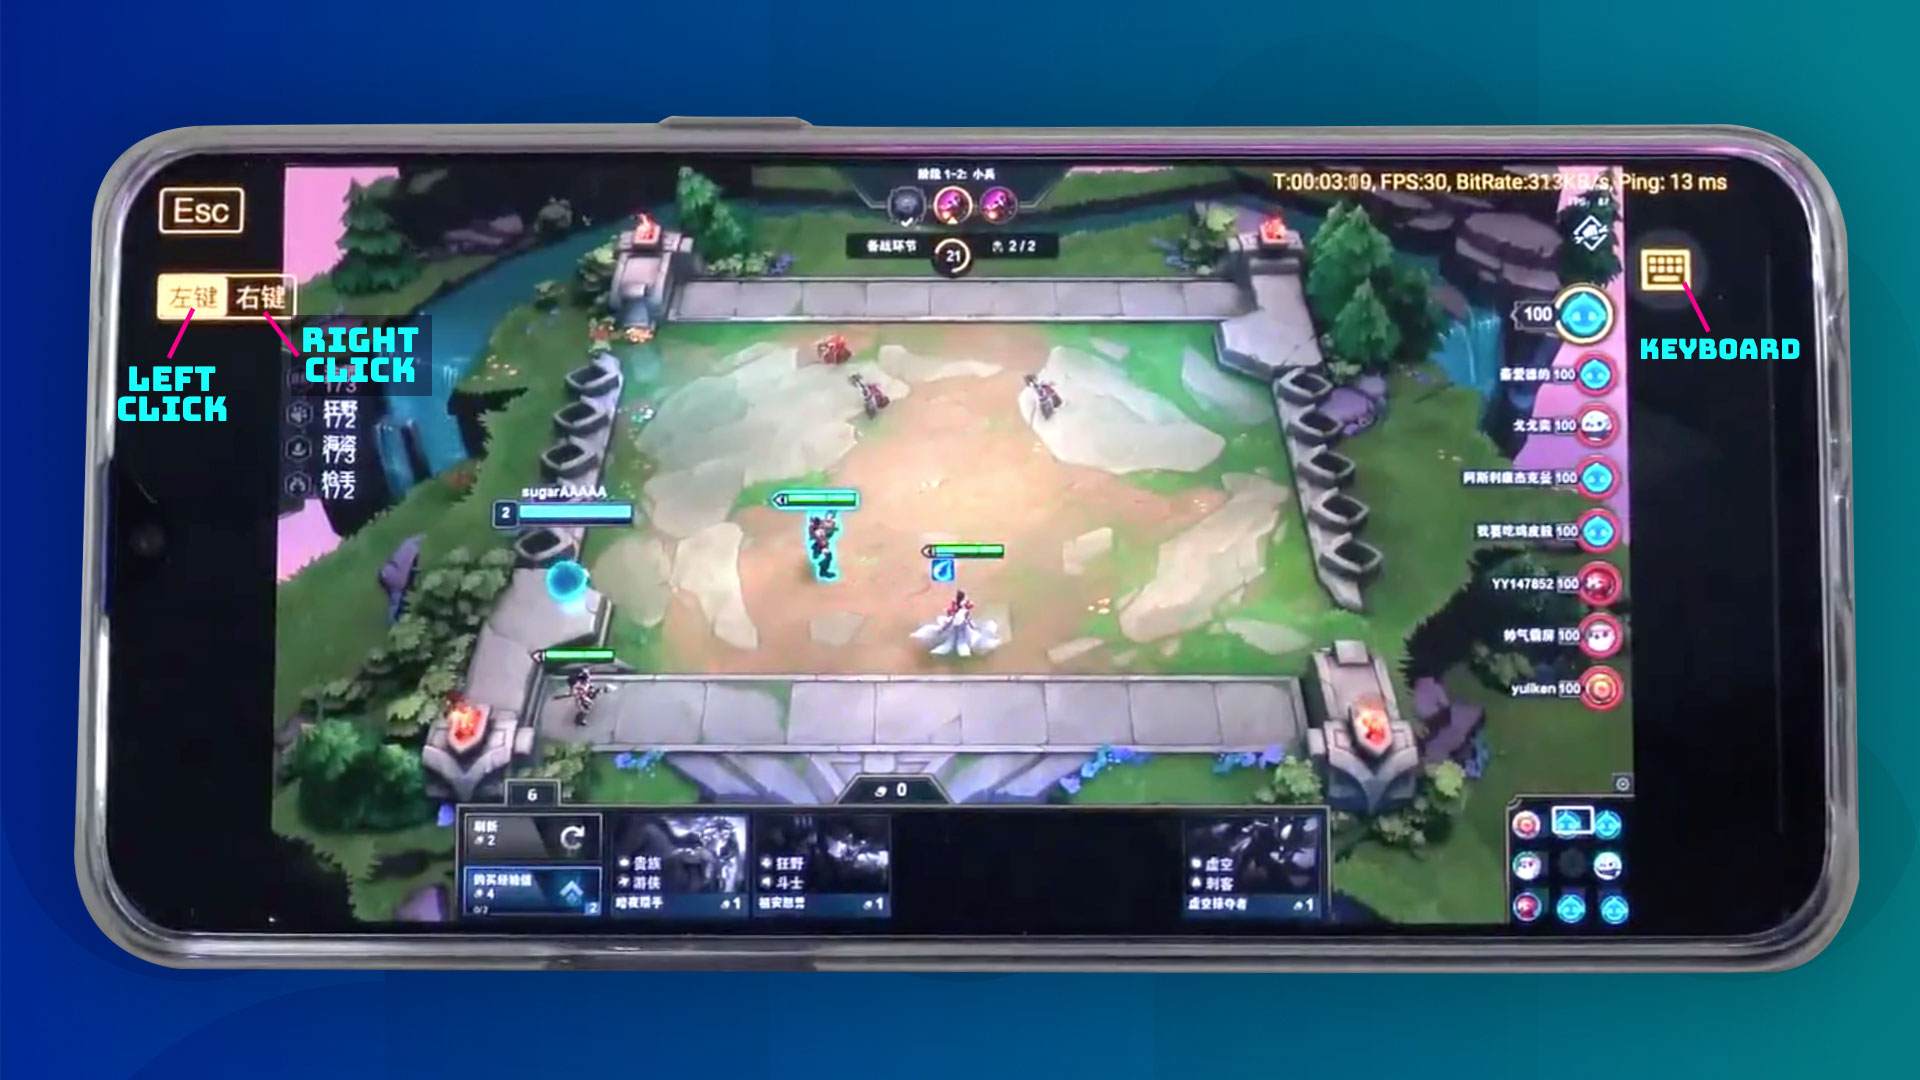 Tencent finally lets you play Teamfight Tactics on mobile, but only at home